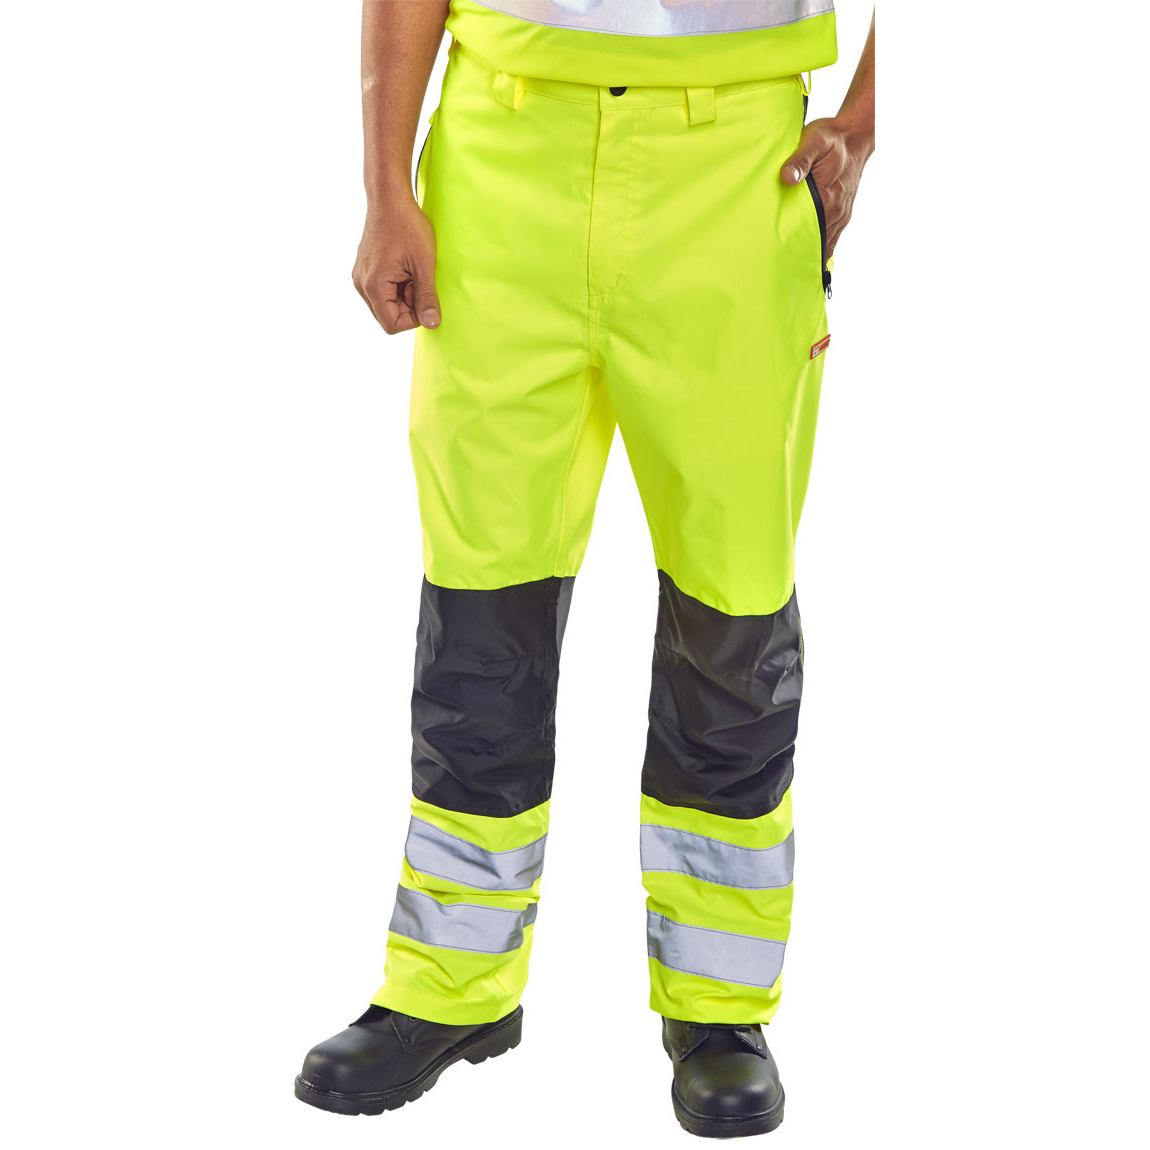 Ladies B-Seen Contrast Trousers Hi-Vis Waterproof XL Saturn Yellow Ref BD85SYXL *Up to 3 Day Leadtime*